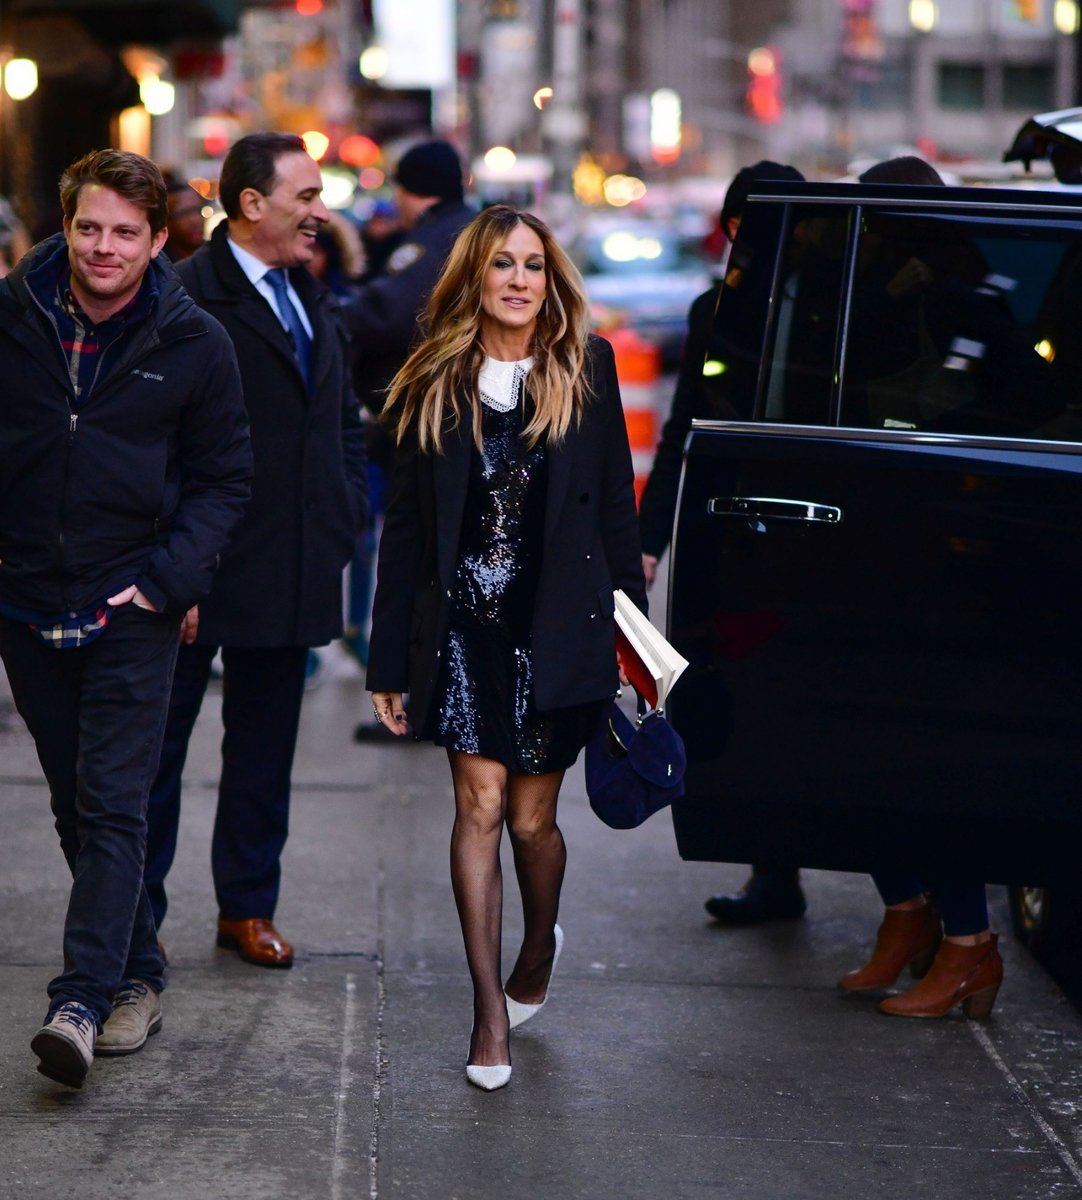 Sarah Jessica Parker, styczeń 2018 (Fot. James Devaney, Getty Images)